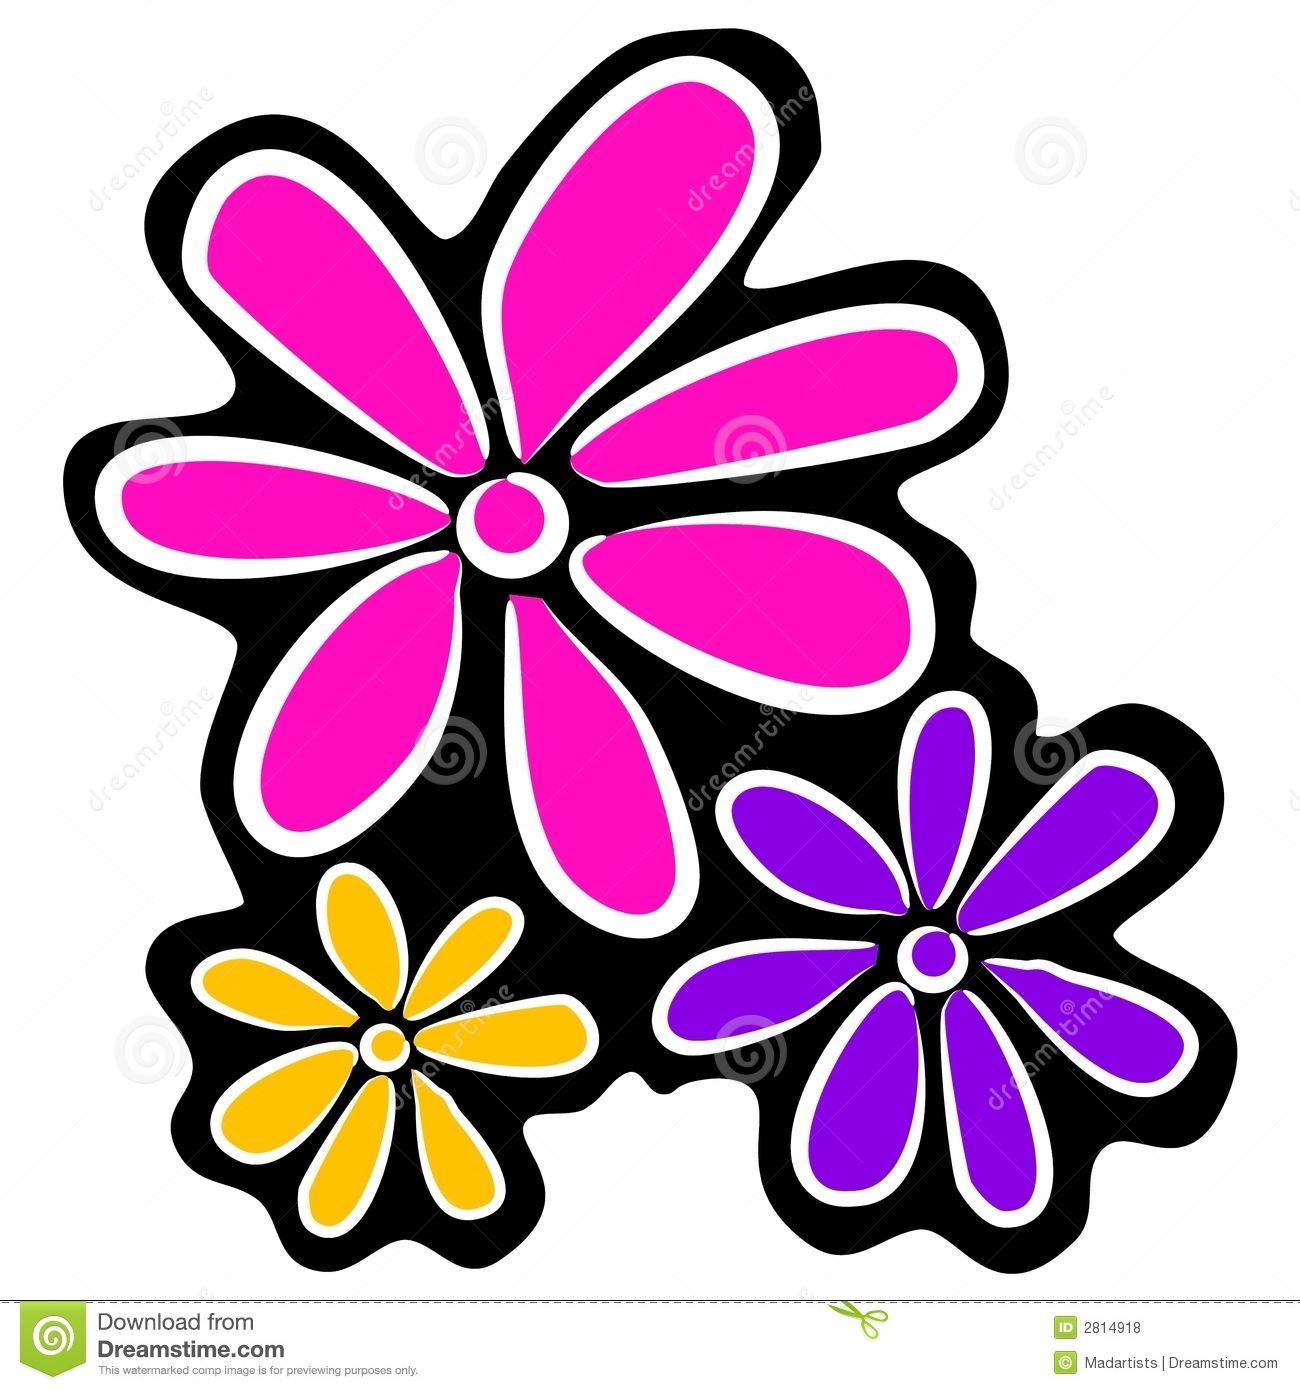 Flores clipart - Clipground